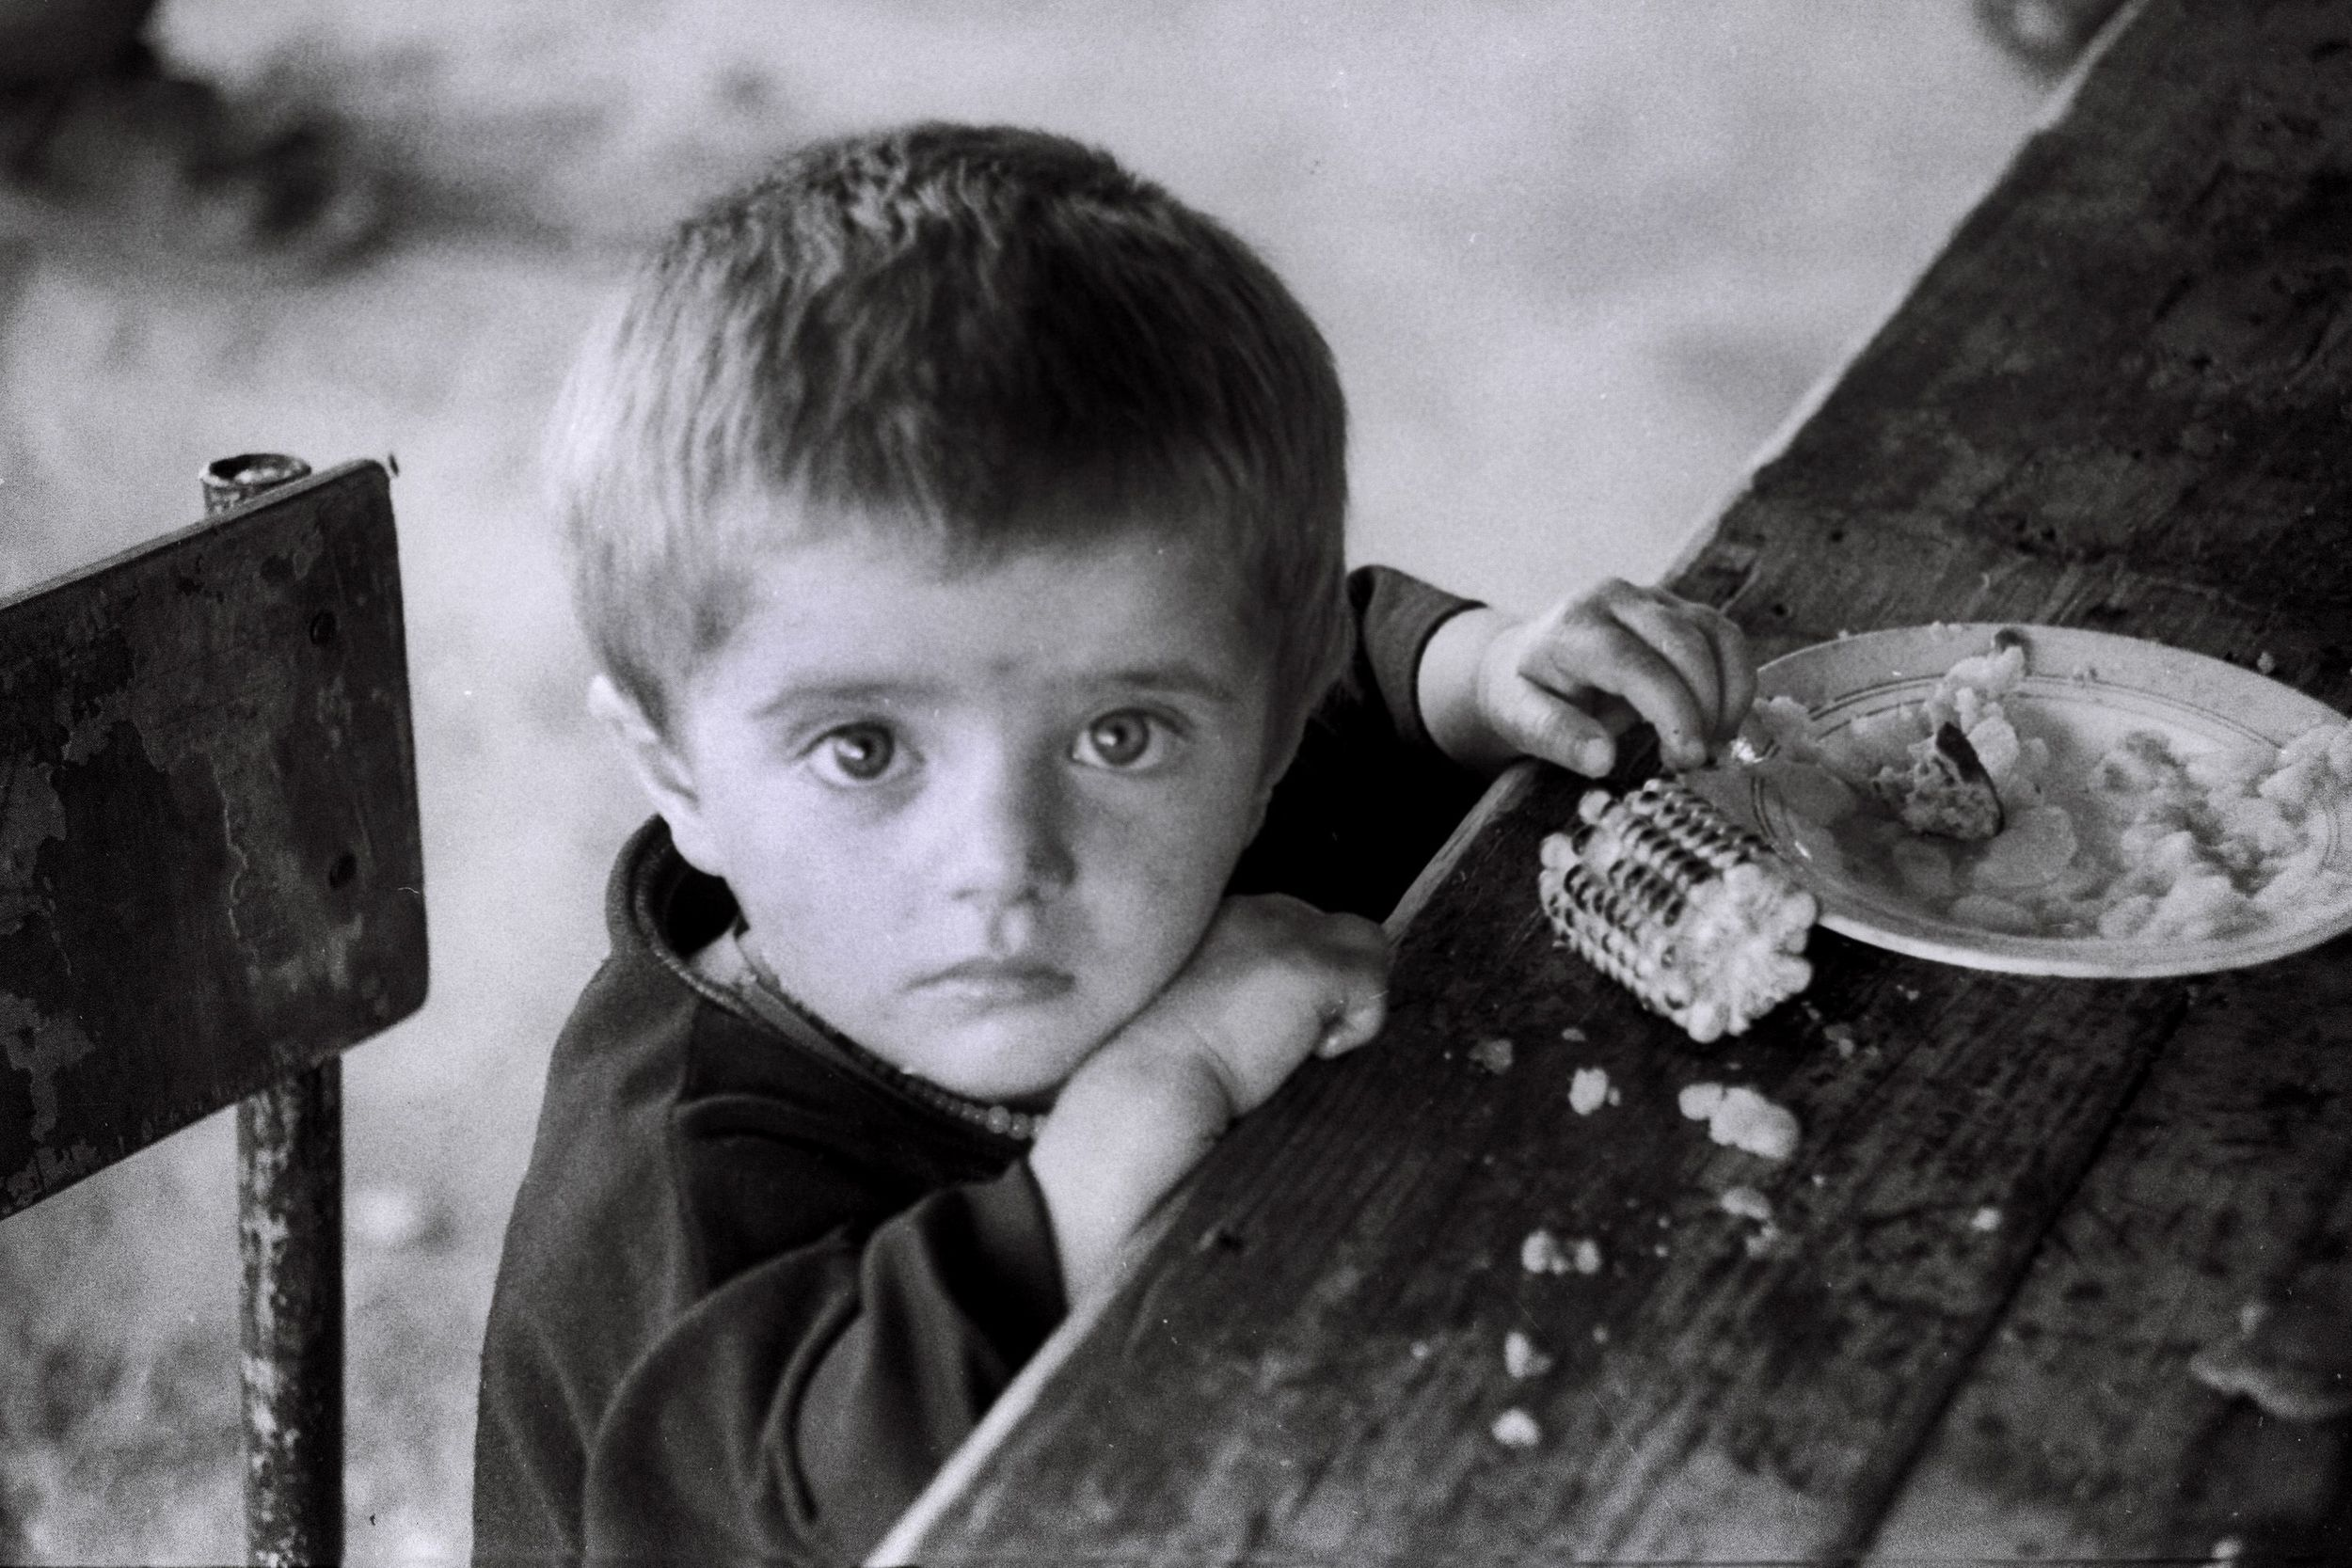 Azerbaijani refugee child from Karabakh. Credit:  Wikimedia